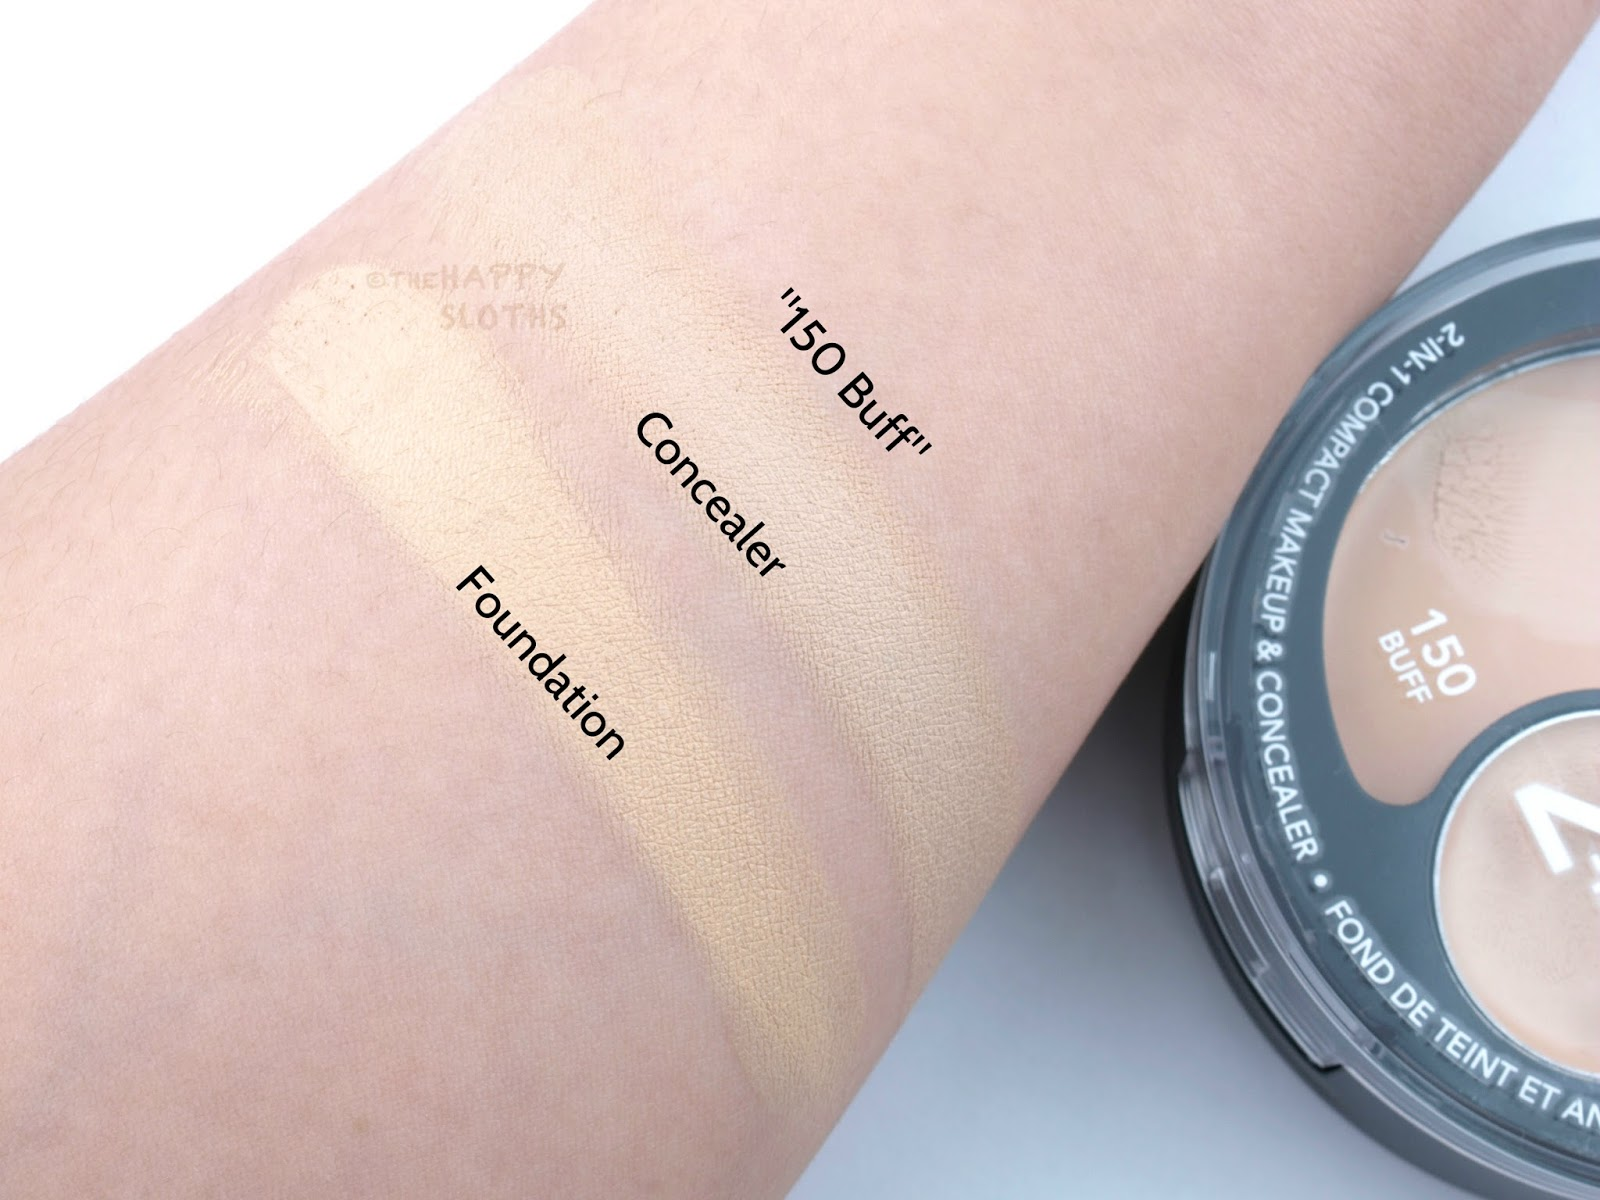 Revlon Colorstay 2 In 1 Compact Makeup Concealer Review And Foundations